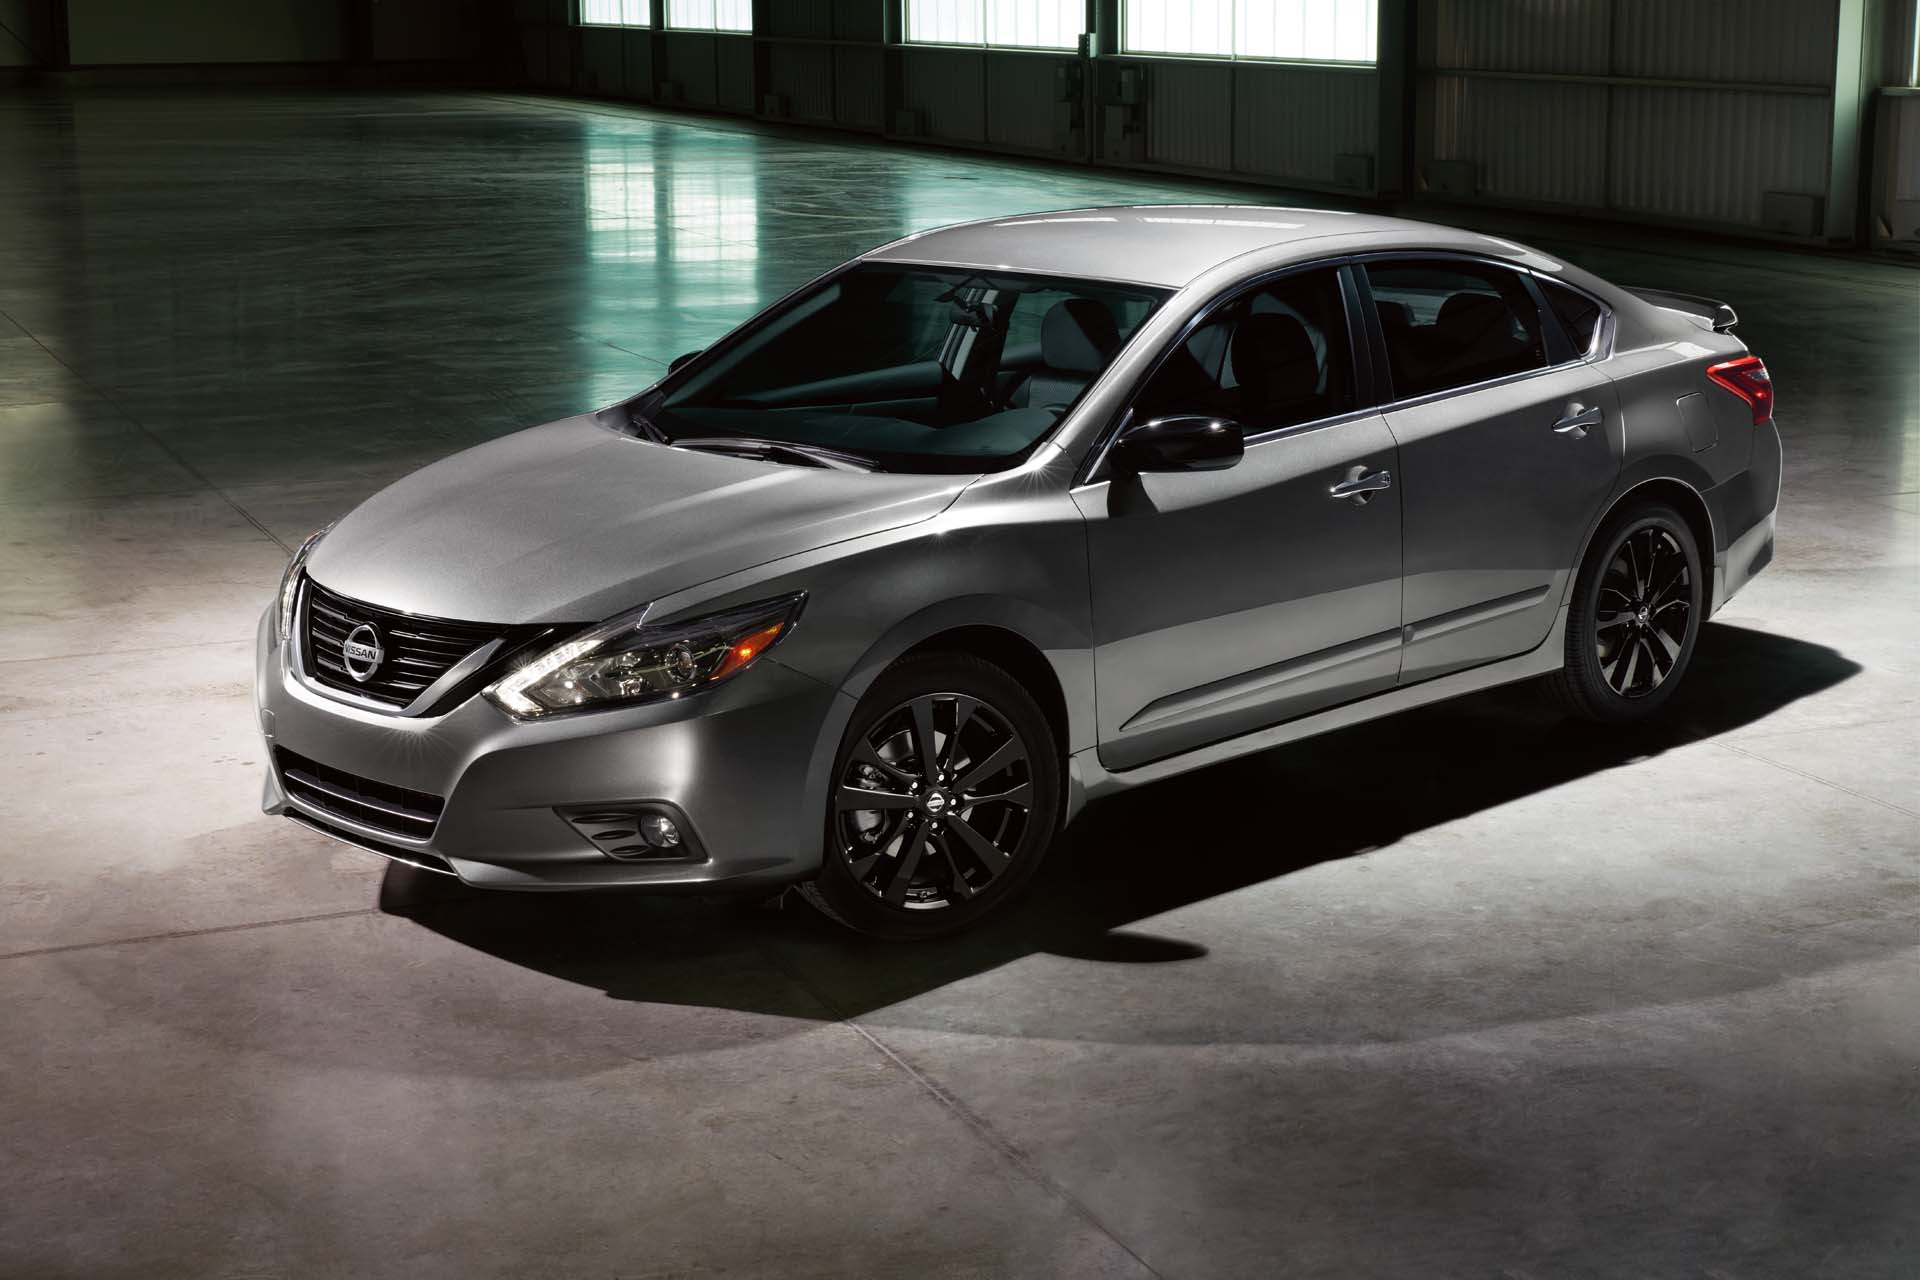 2017 Nissan Altima Sv >> Nissan gives 6 popular models the Midnight Edition treatment